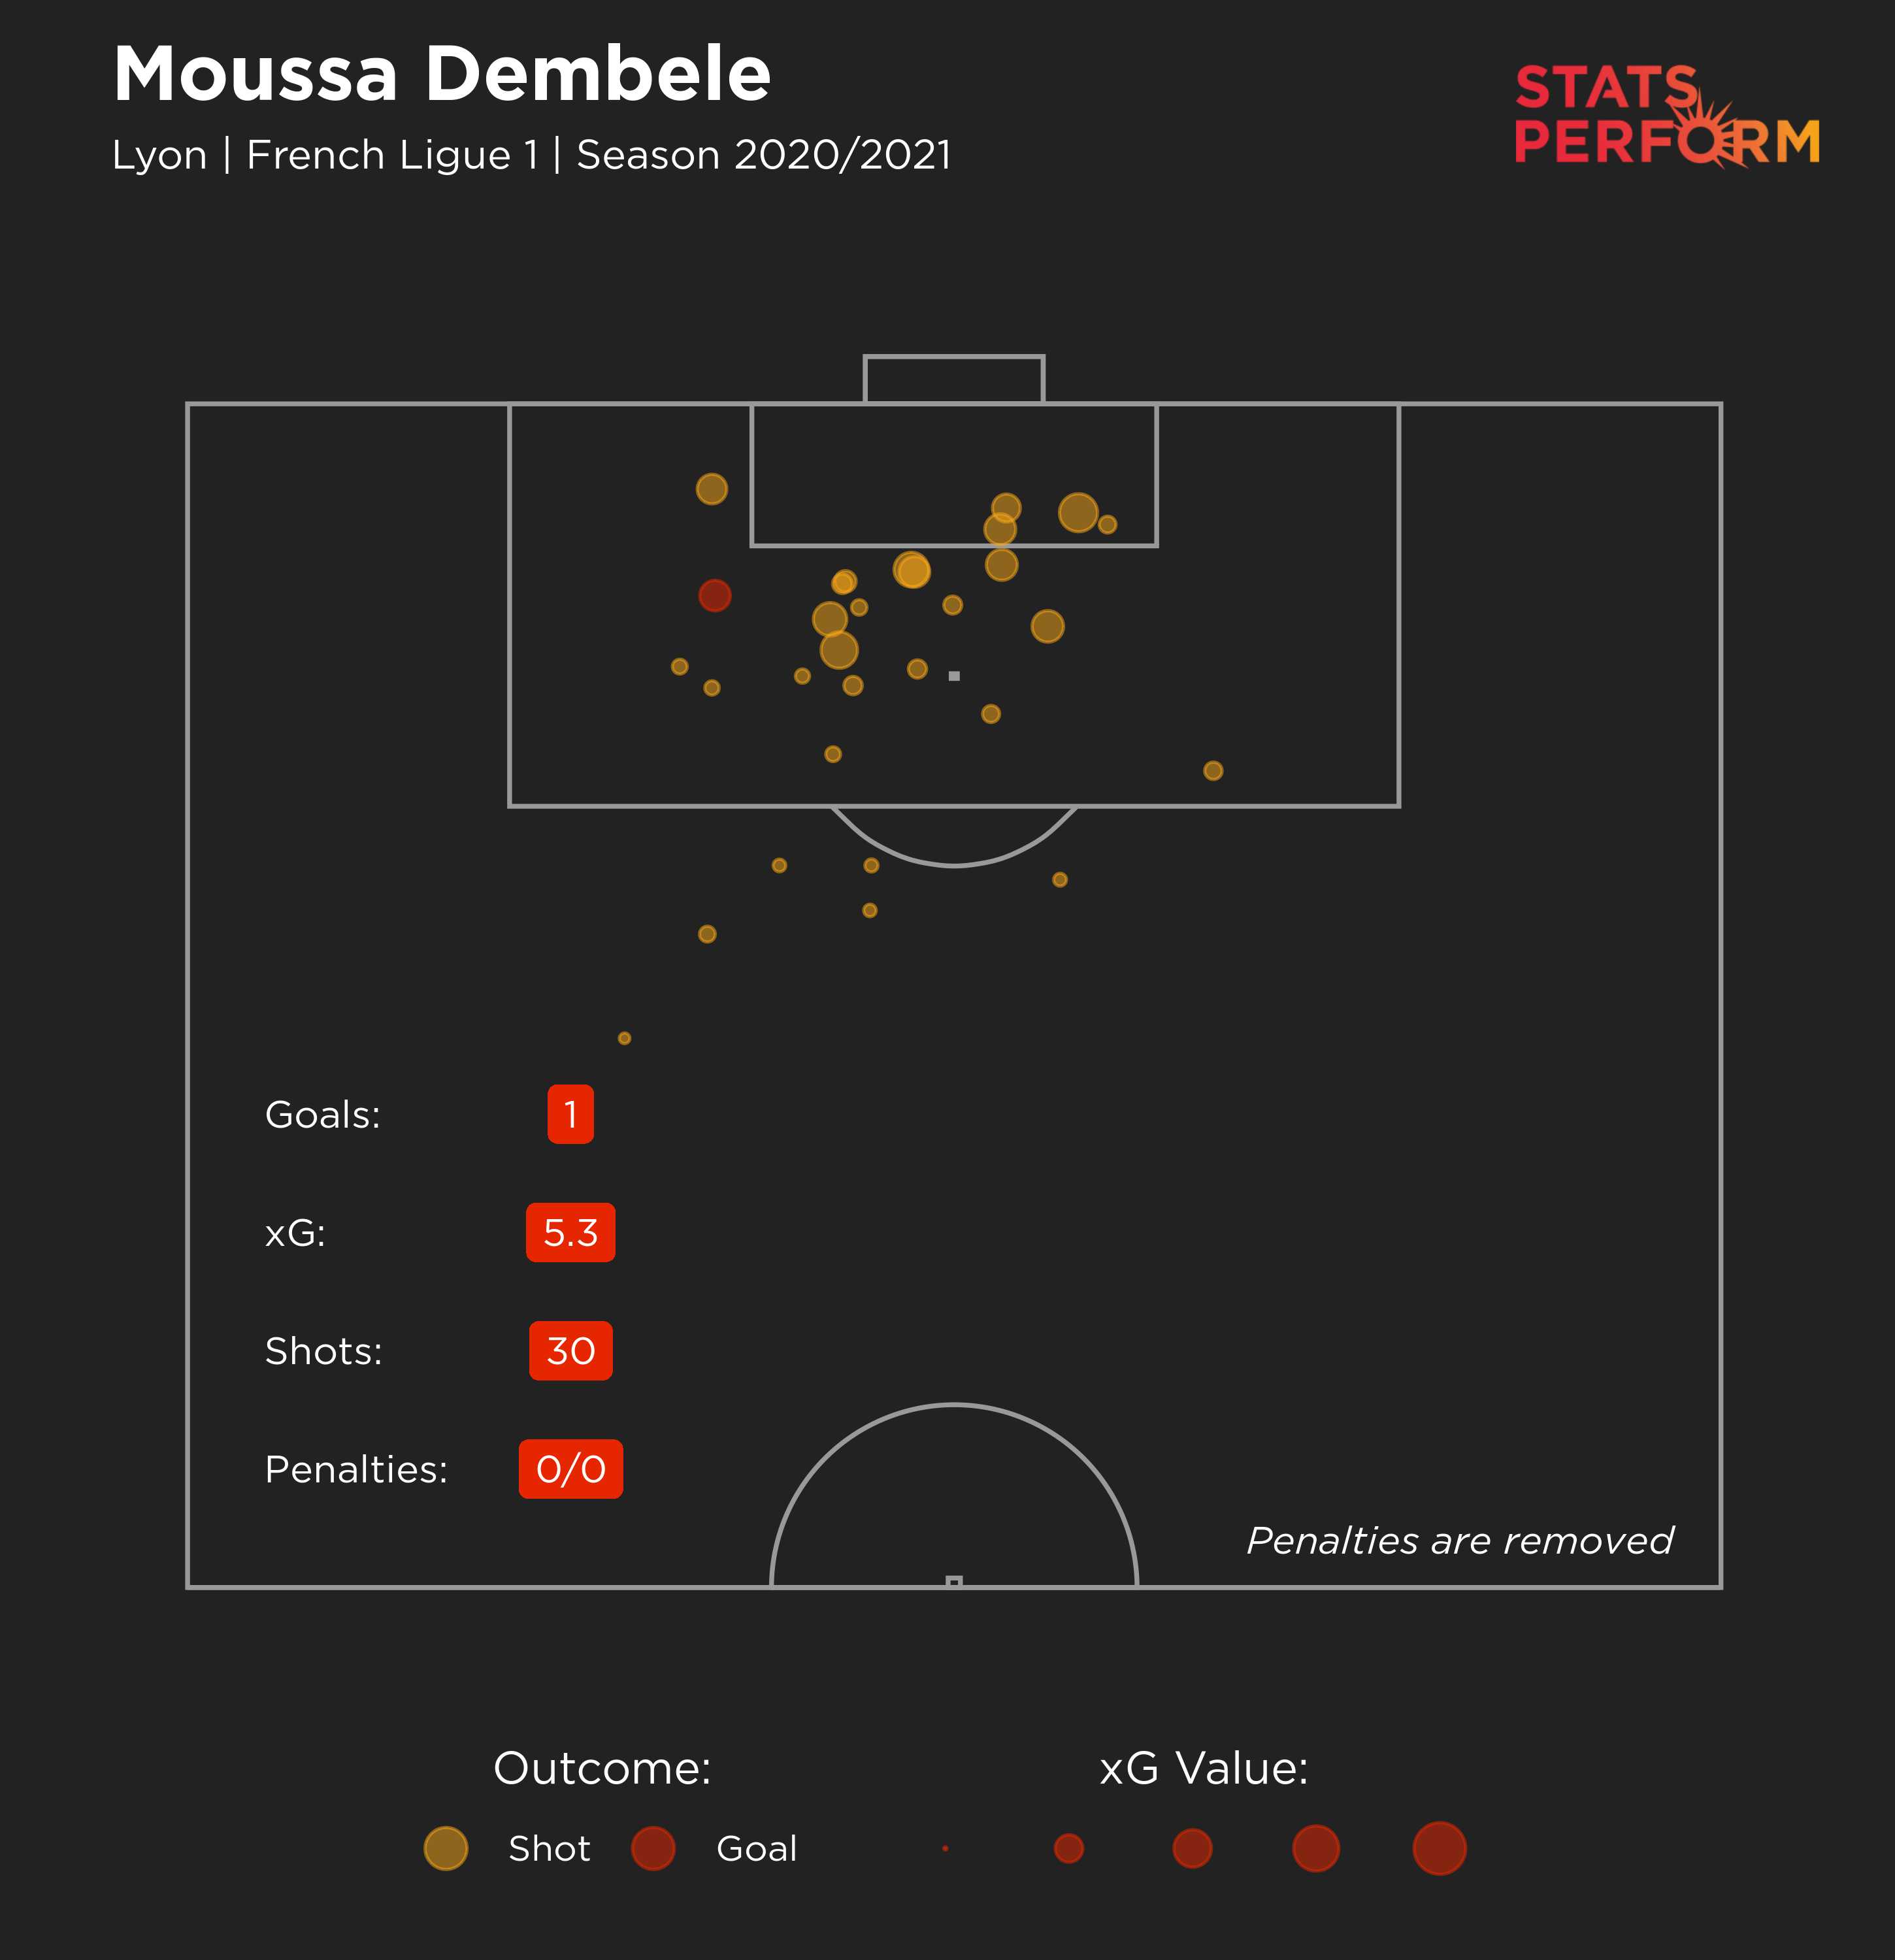 Moussa Dembele's expected goals in the 2020-21 Ligue 1 season